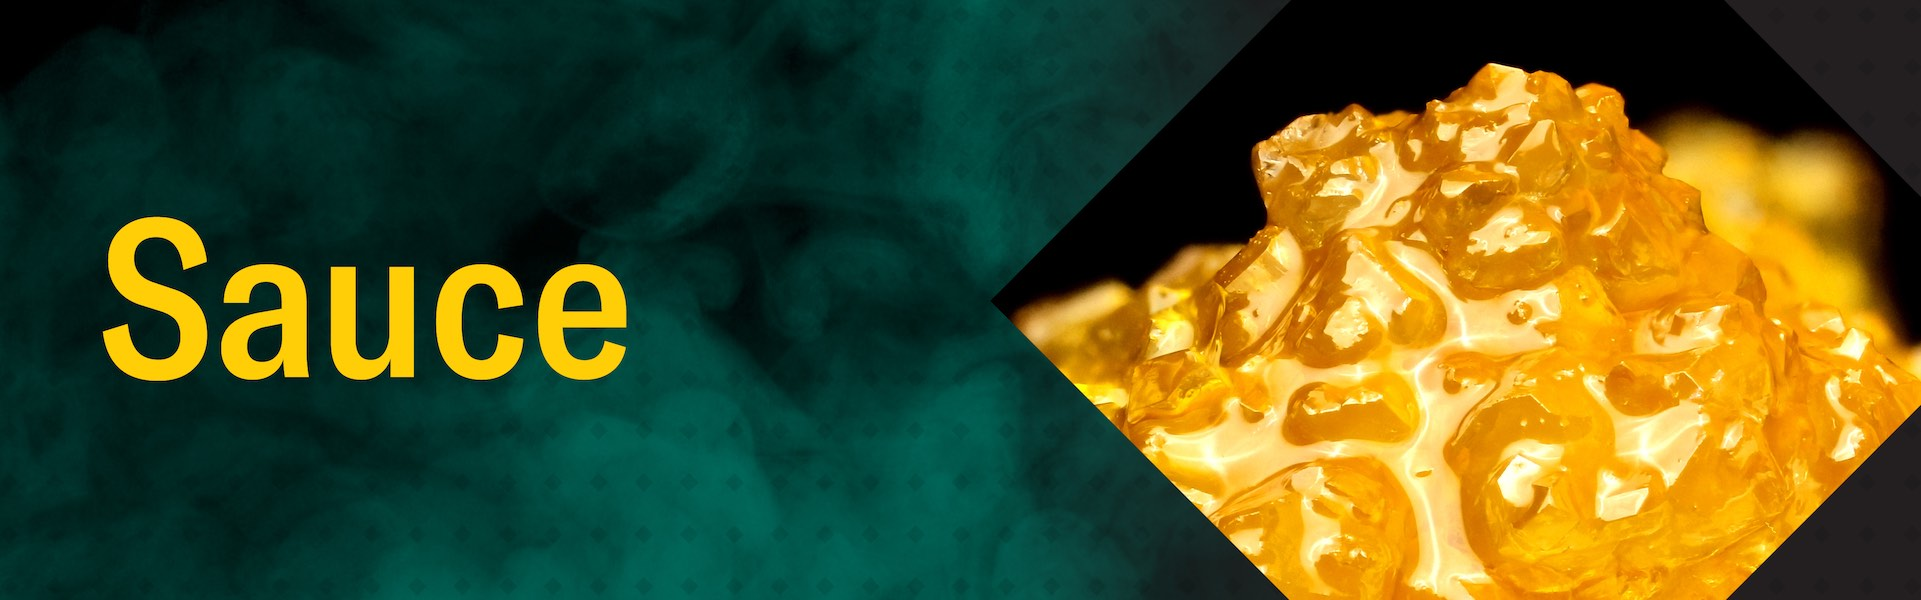 12 days of dabs sauce h2 header image - Celebrate 710 with 12 days of dabs, wax, and hash